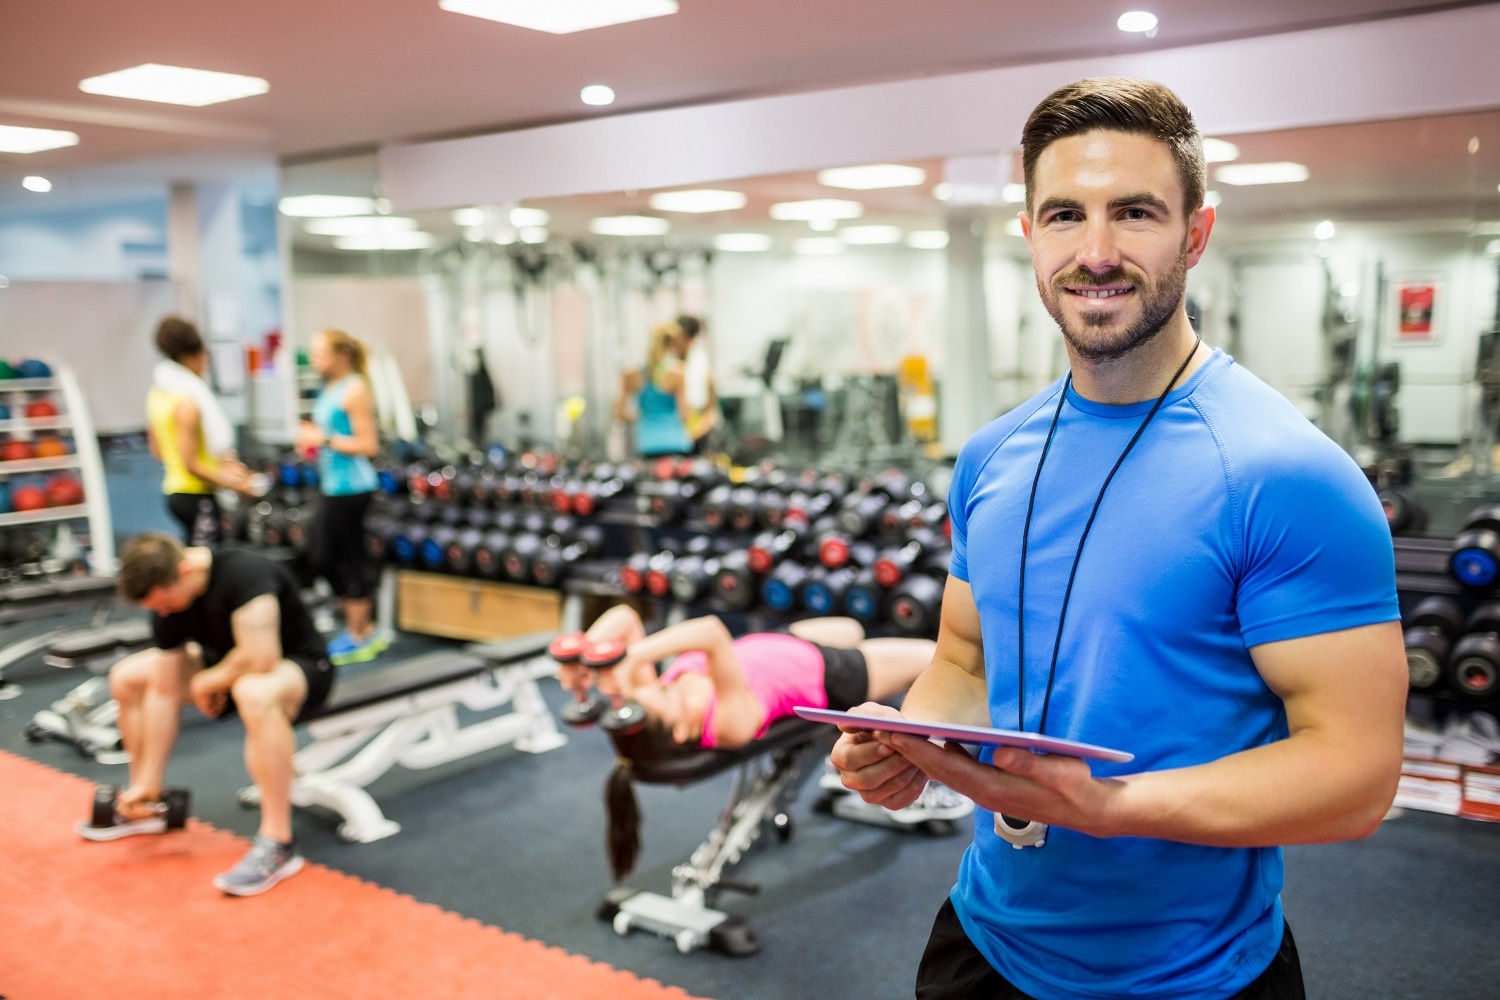 What is Personal Training & What Does a Personal Trainer Do?